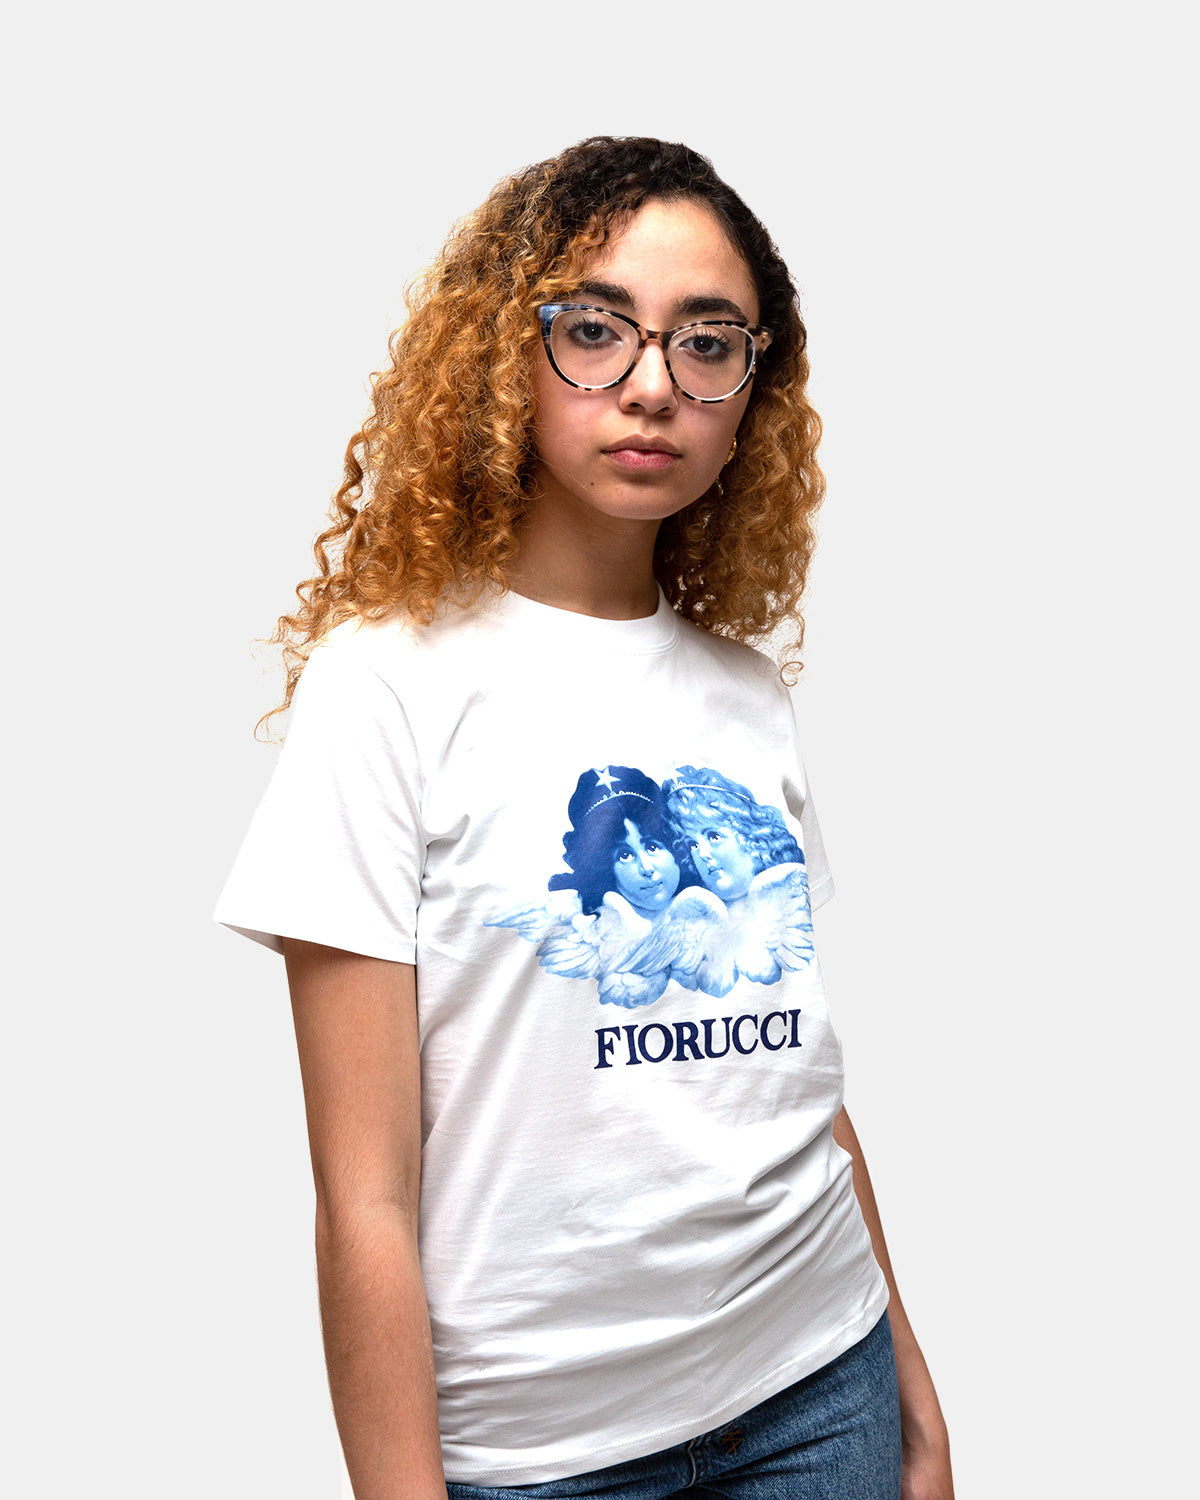 Fiorucci - Women's Angels Heaven Tee (White)